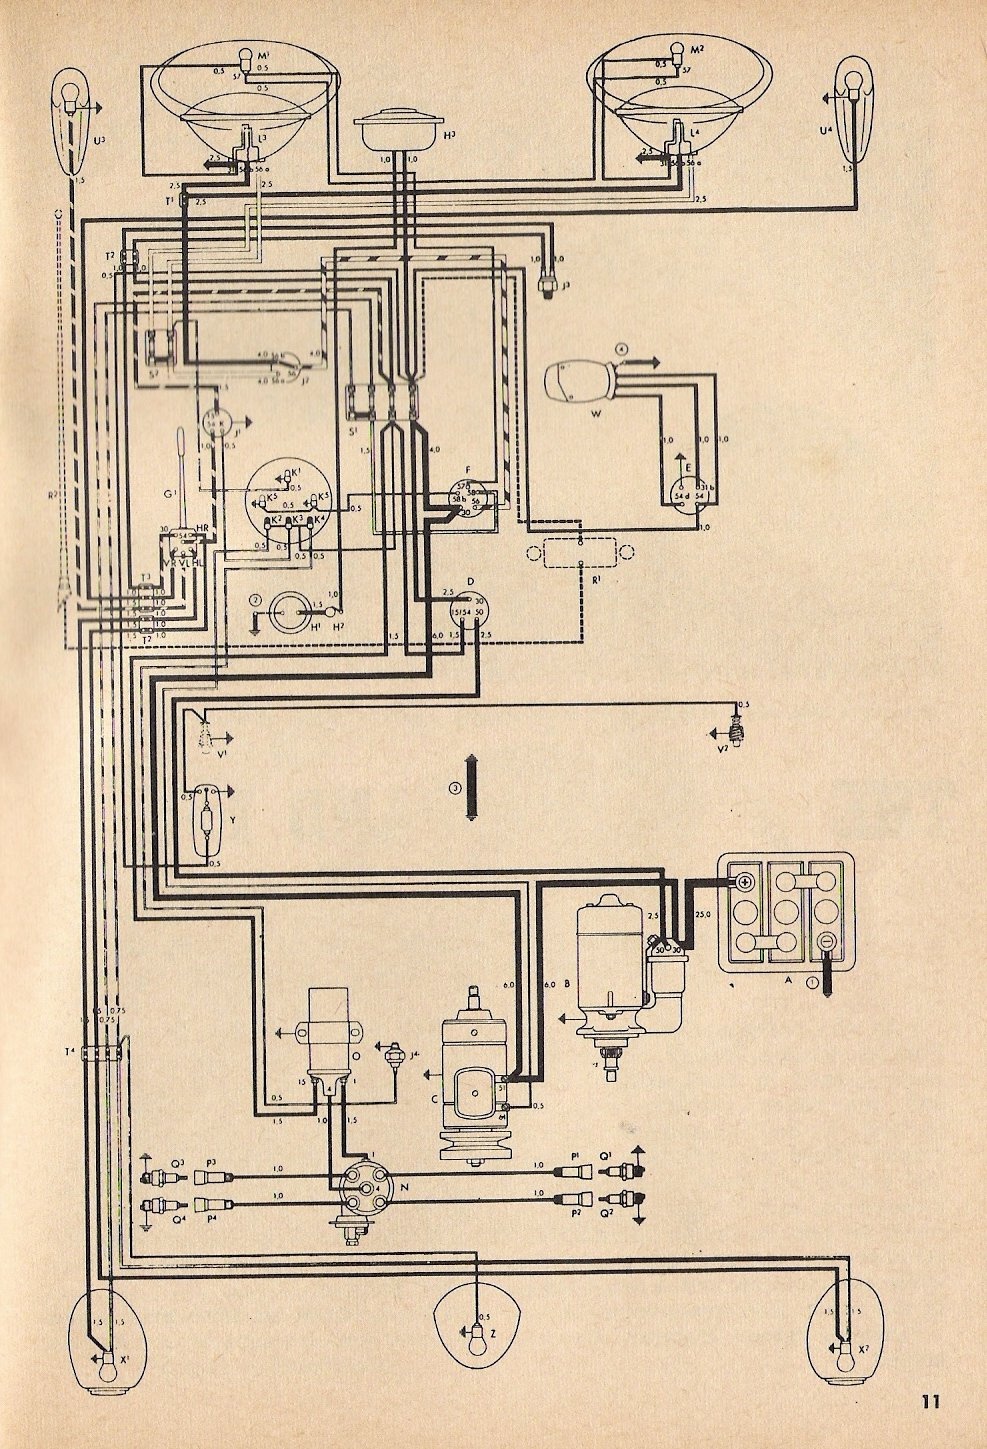 bug_toaug57 1957 beetle wiring diagram thegoldenbug com 1957 vw bug wiring diagram at soozxer.org